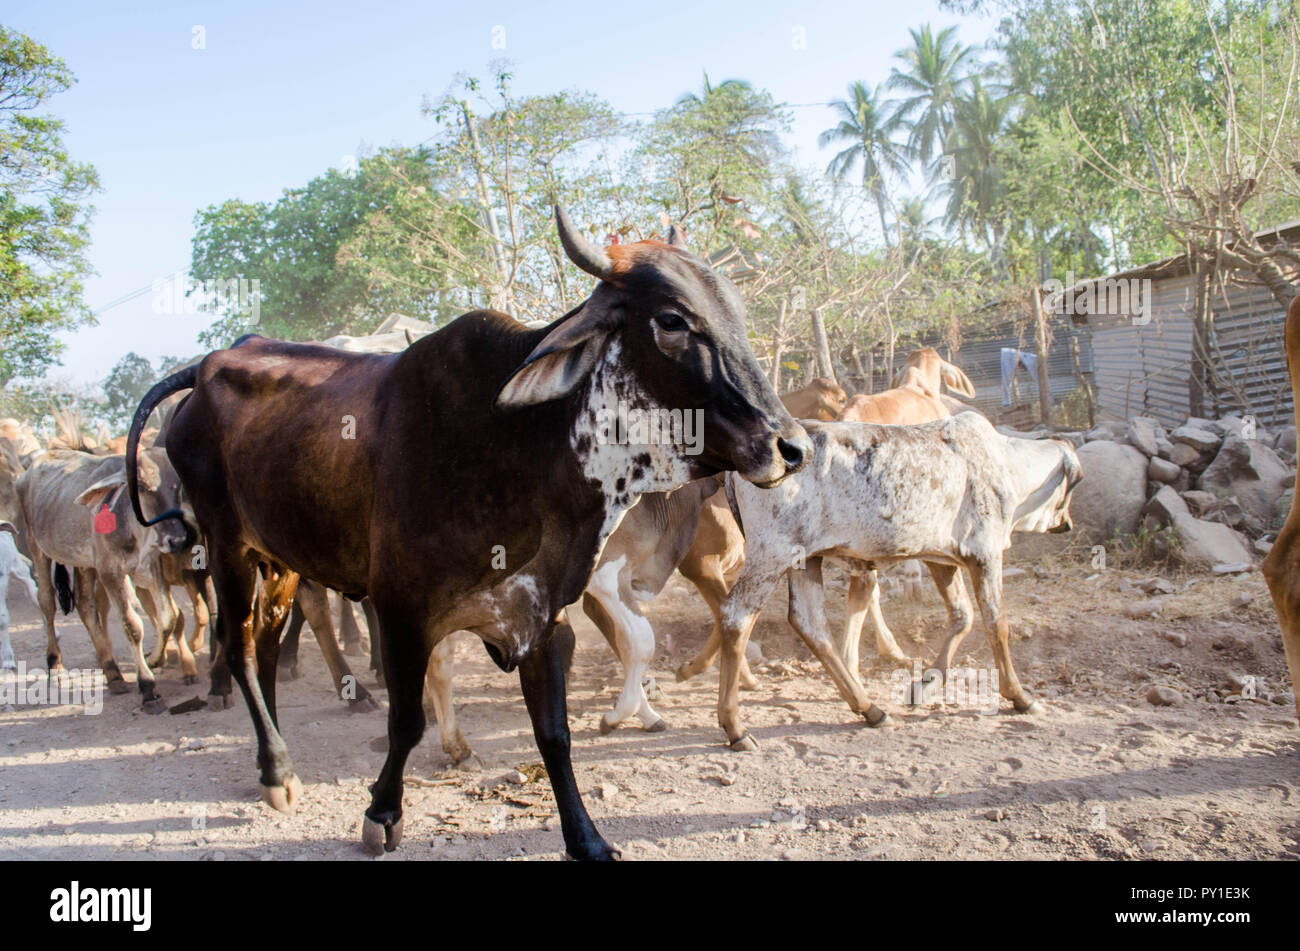 Bulls and cows being herded by a dog and humans in a dirt trail at the beach. - Stock Image